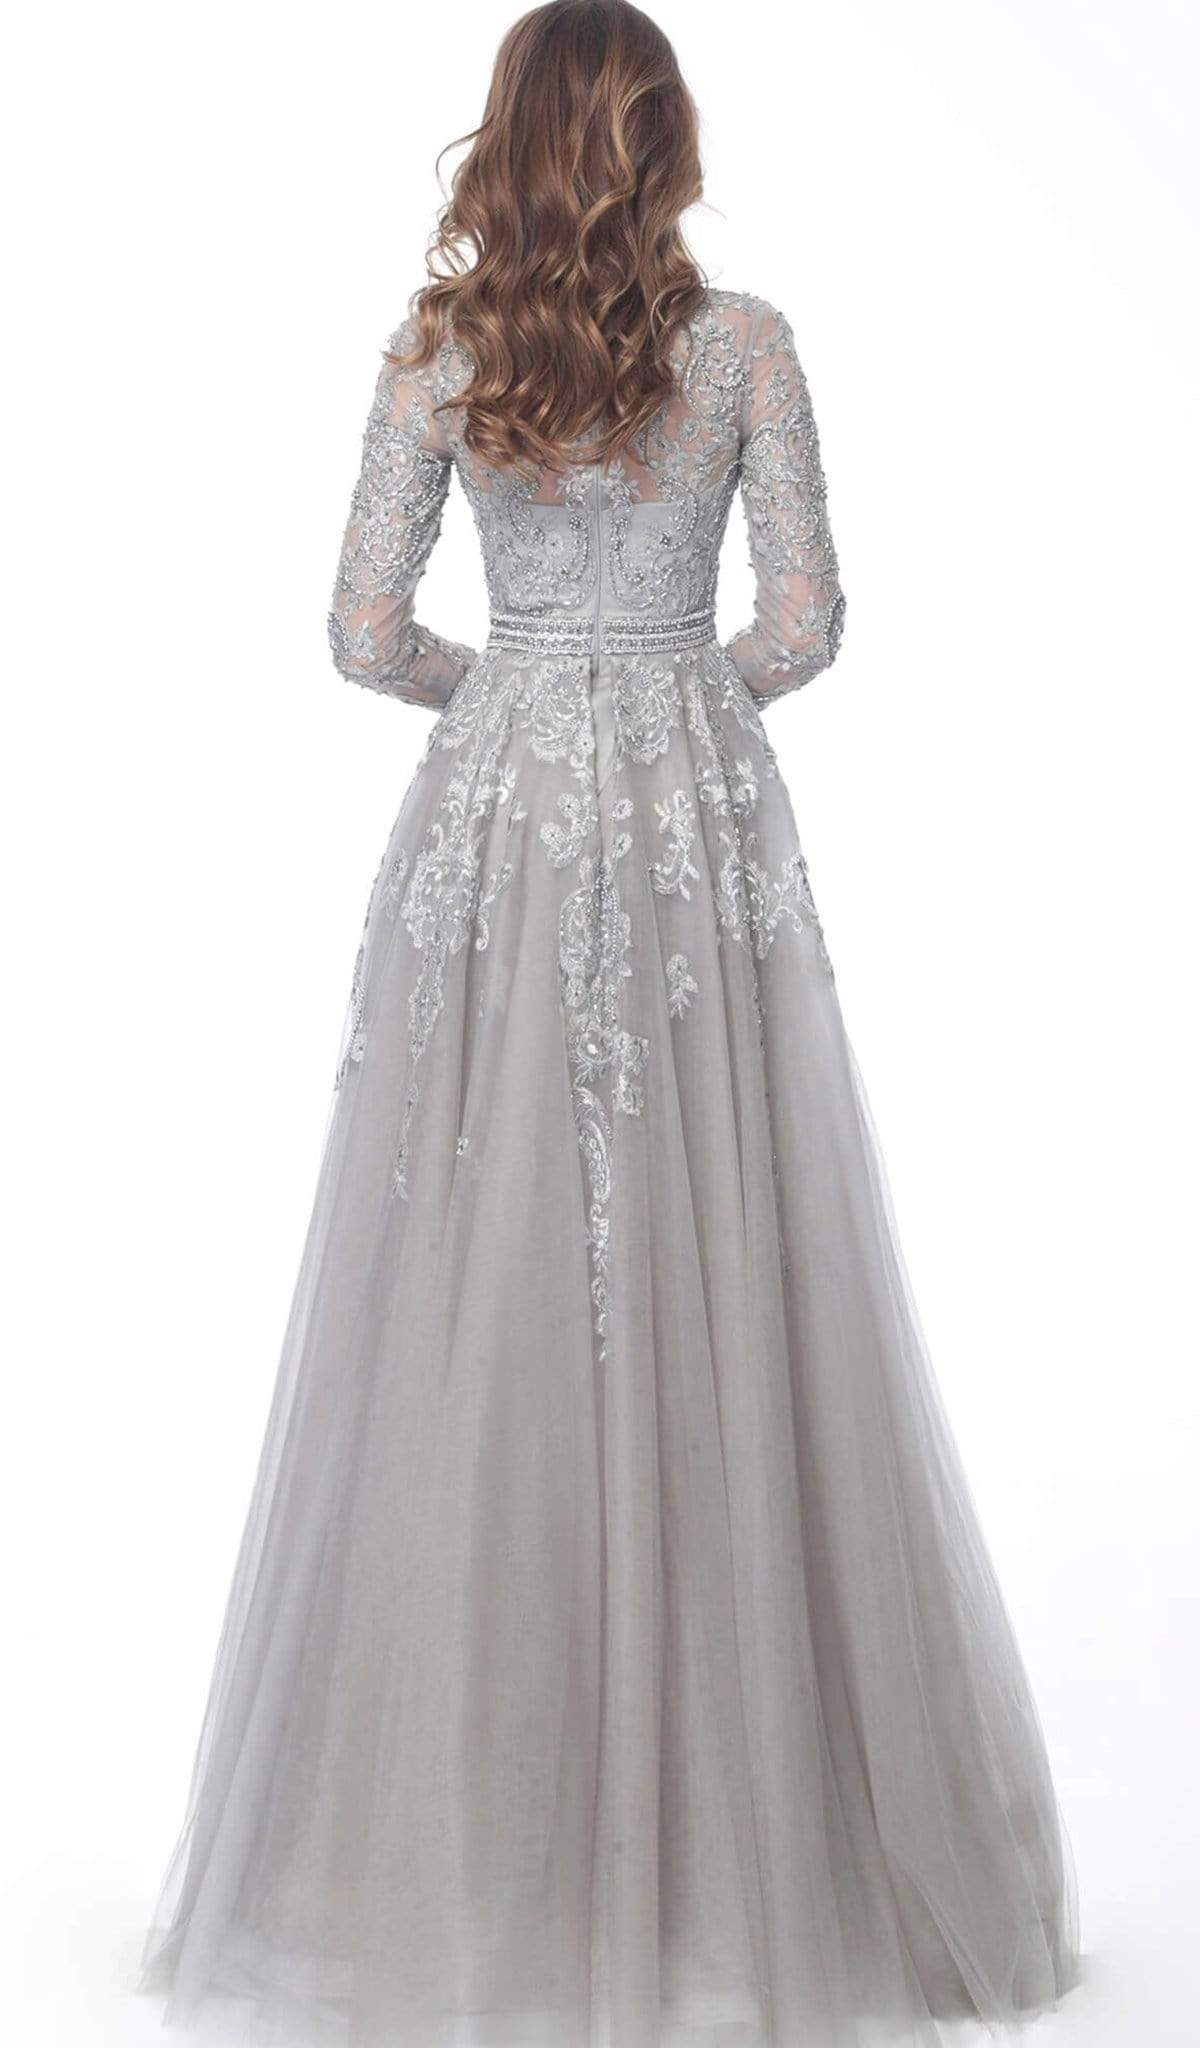 Jovani - 62777 Embroidered Long Sleeve High Neck A-line Dress In Silver